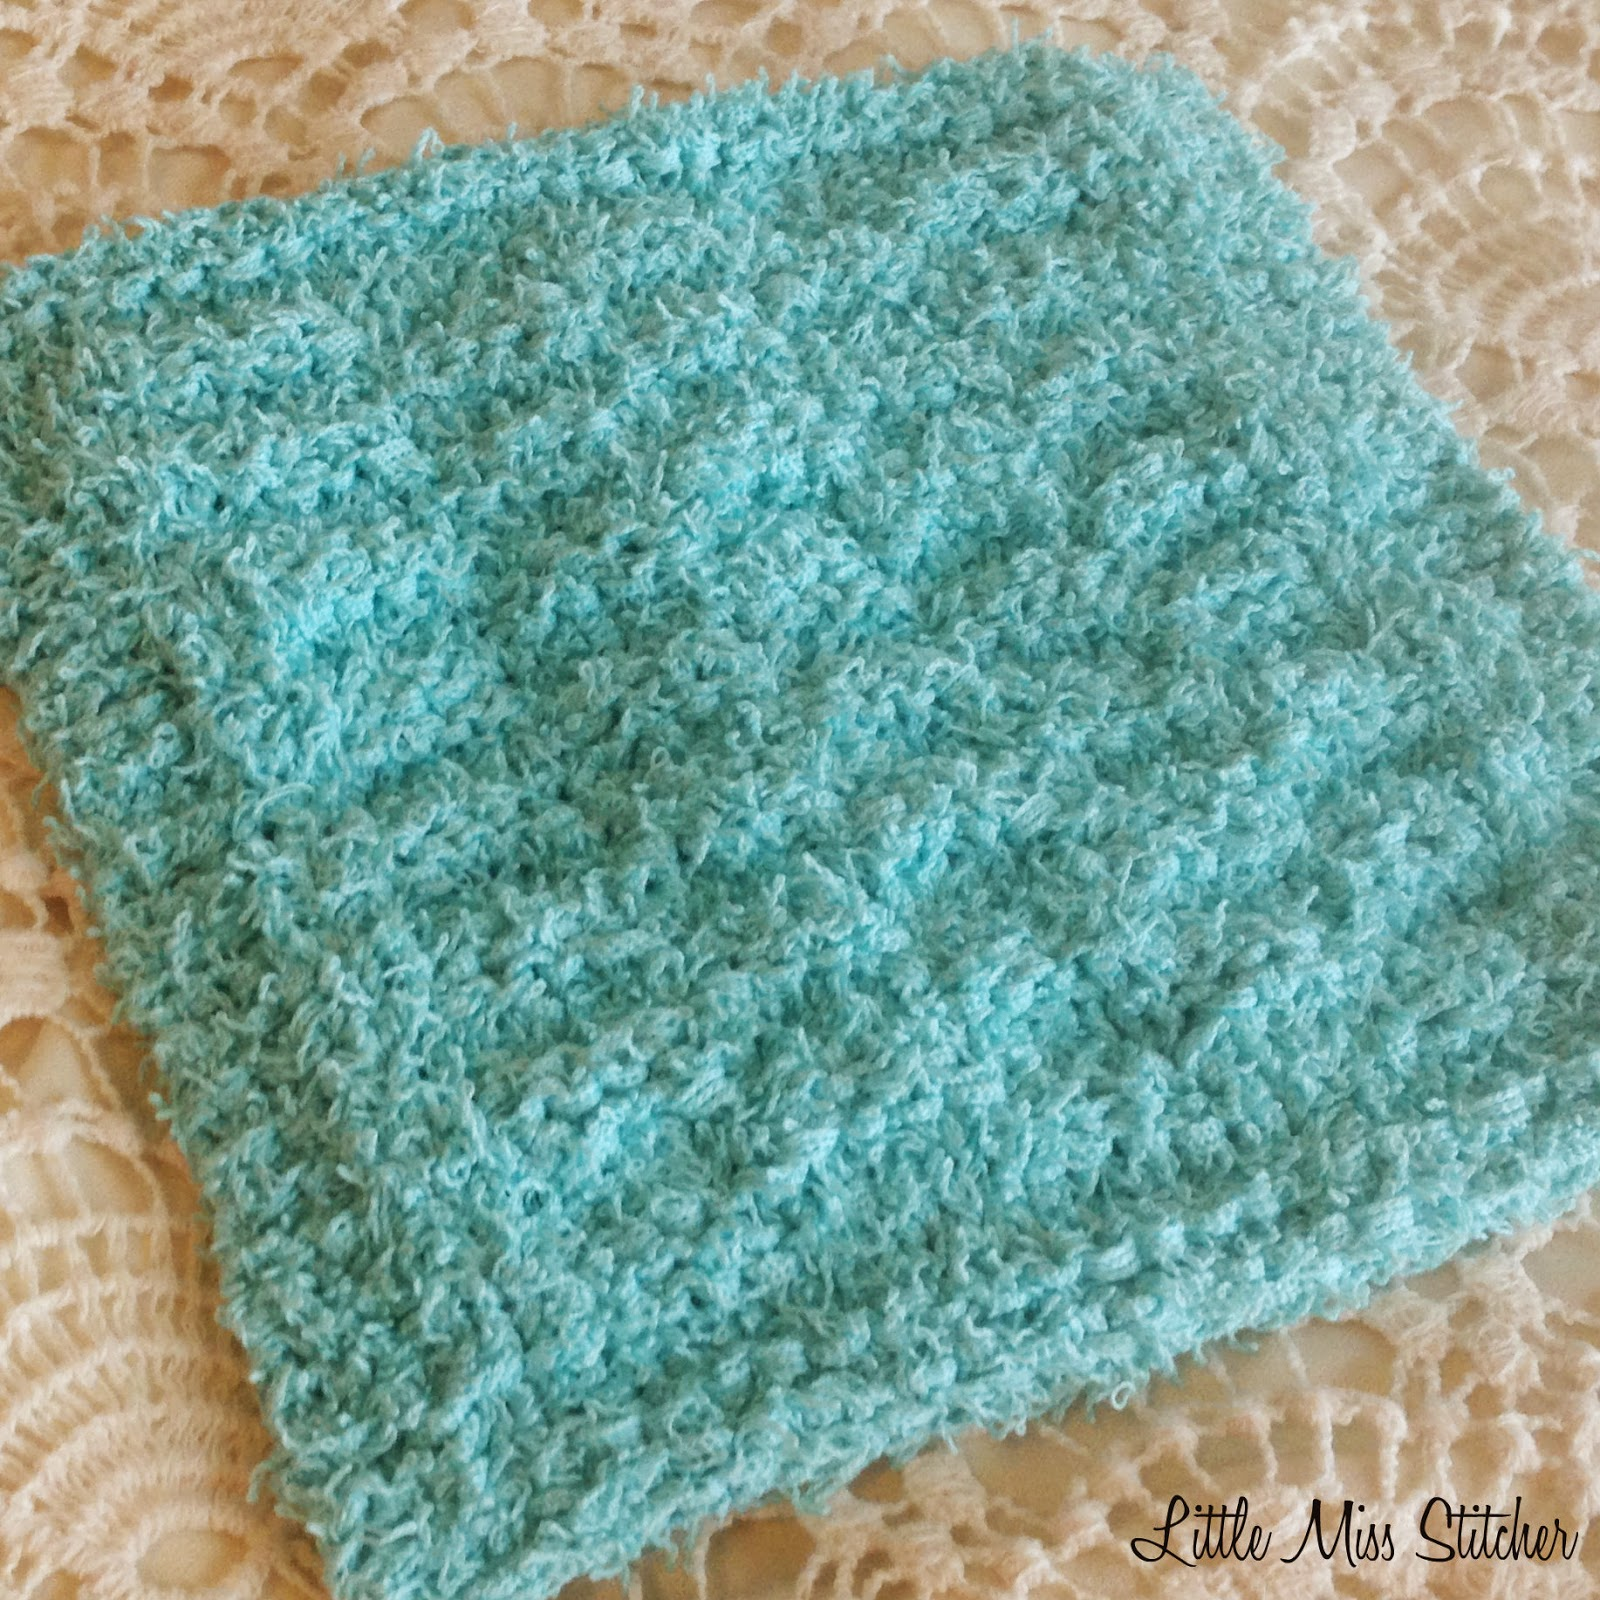 Waffle Knitting Pattern Dishcloth : Little Miss Stitcher: 5 Free Knit Dishcloth Patterns